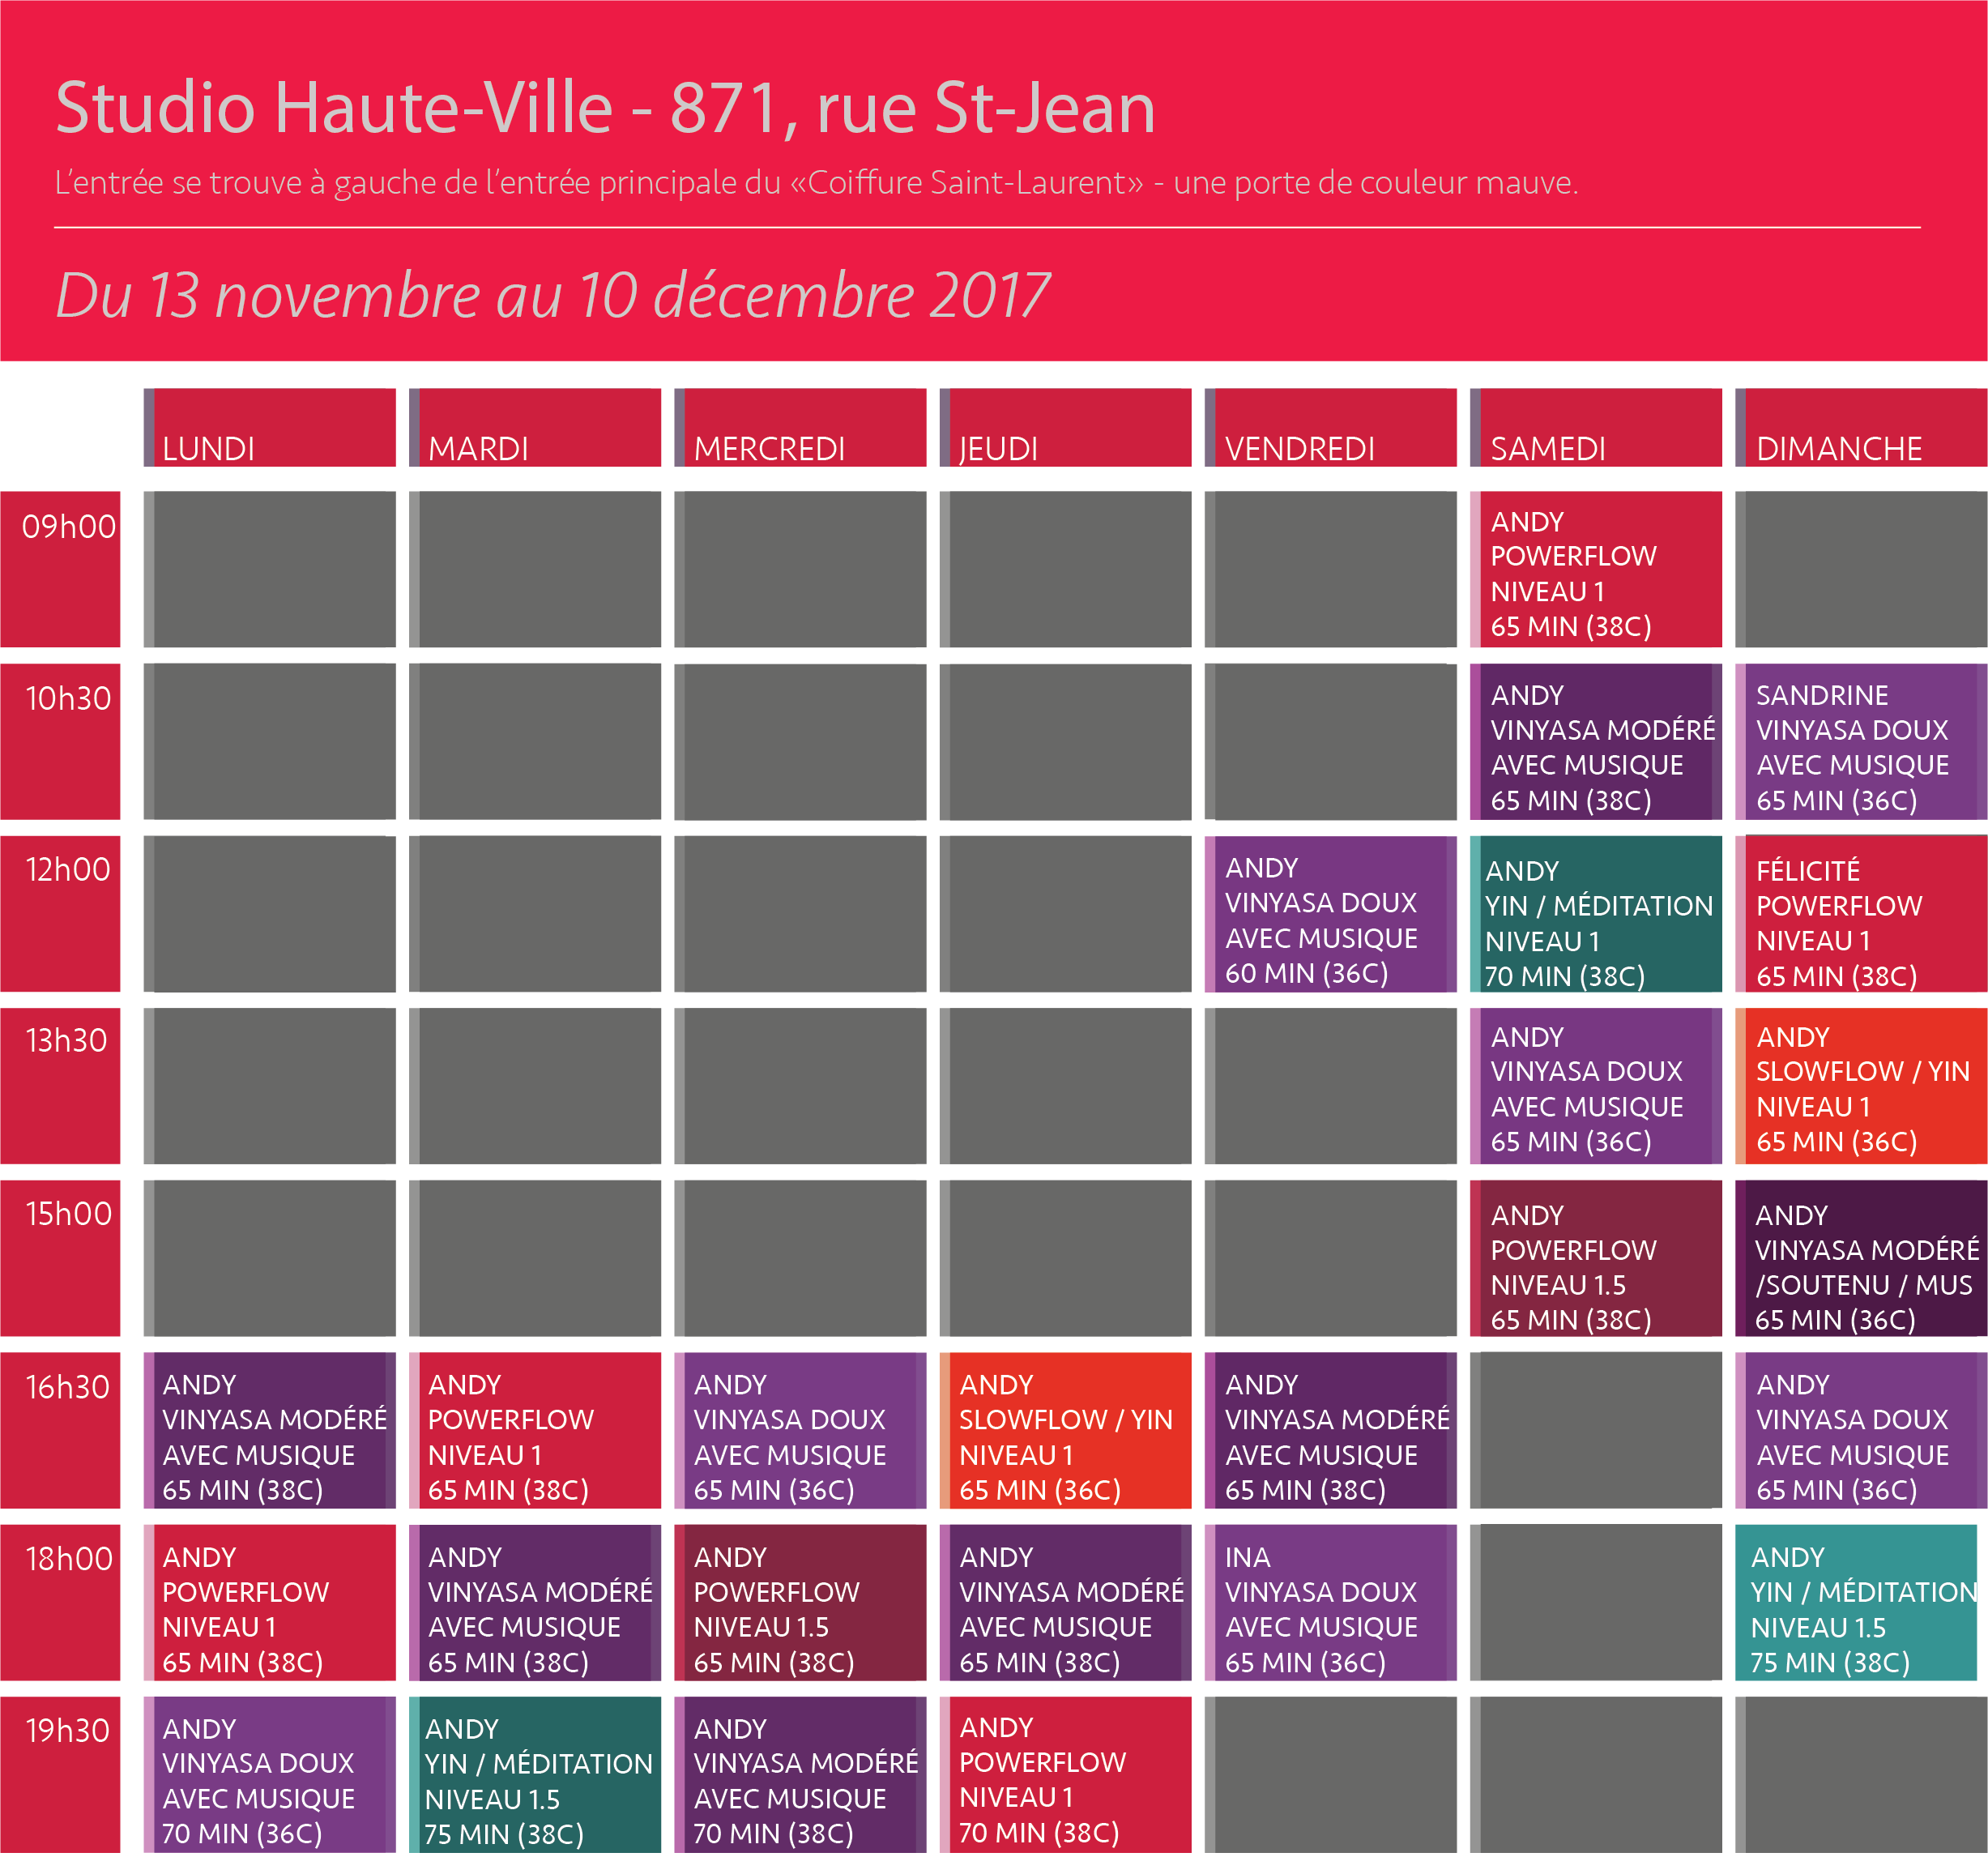 schedule template.png